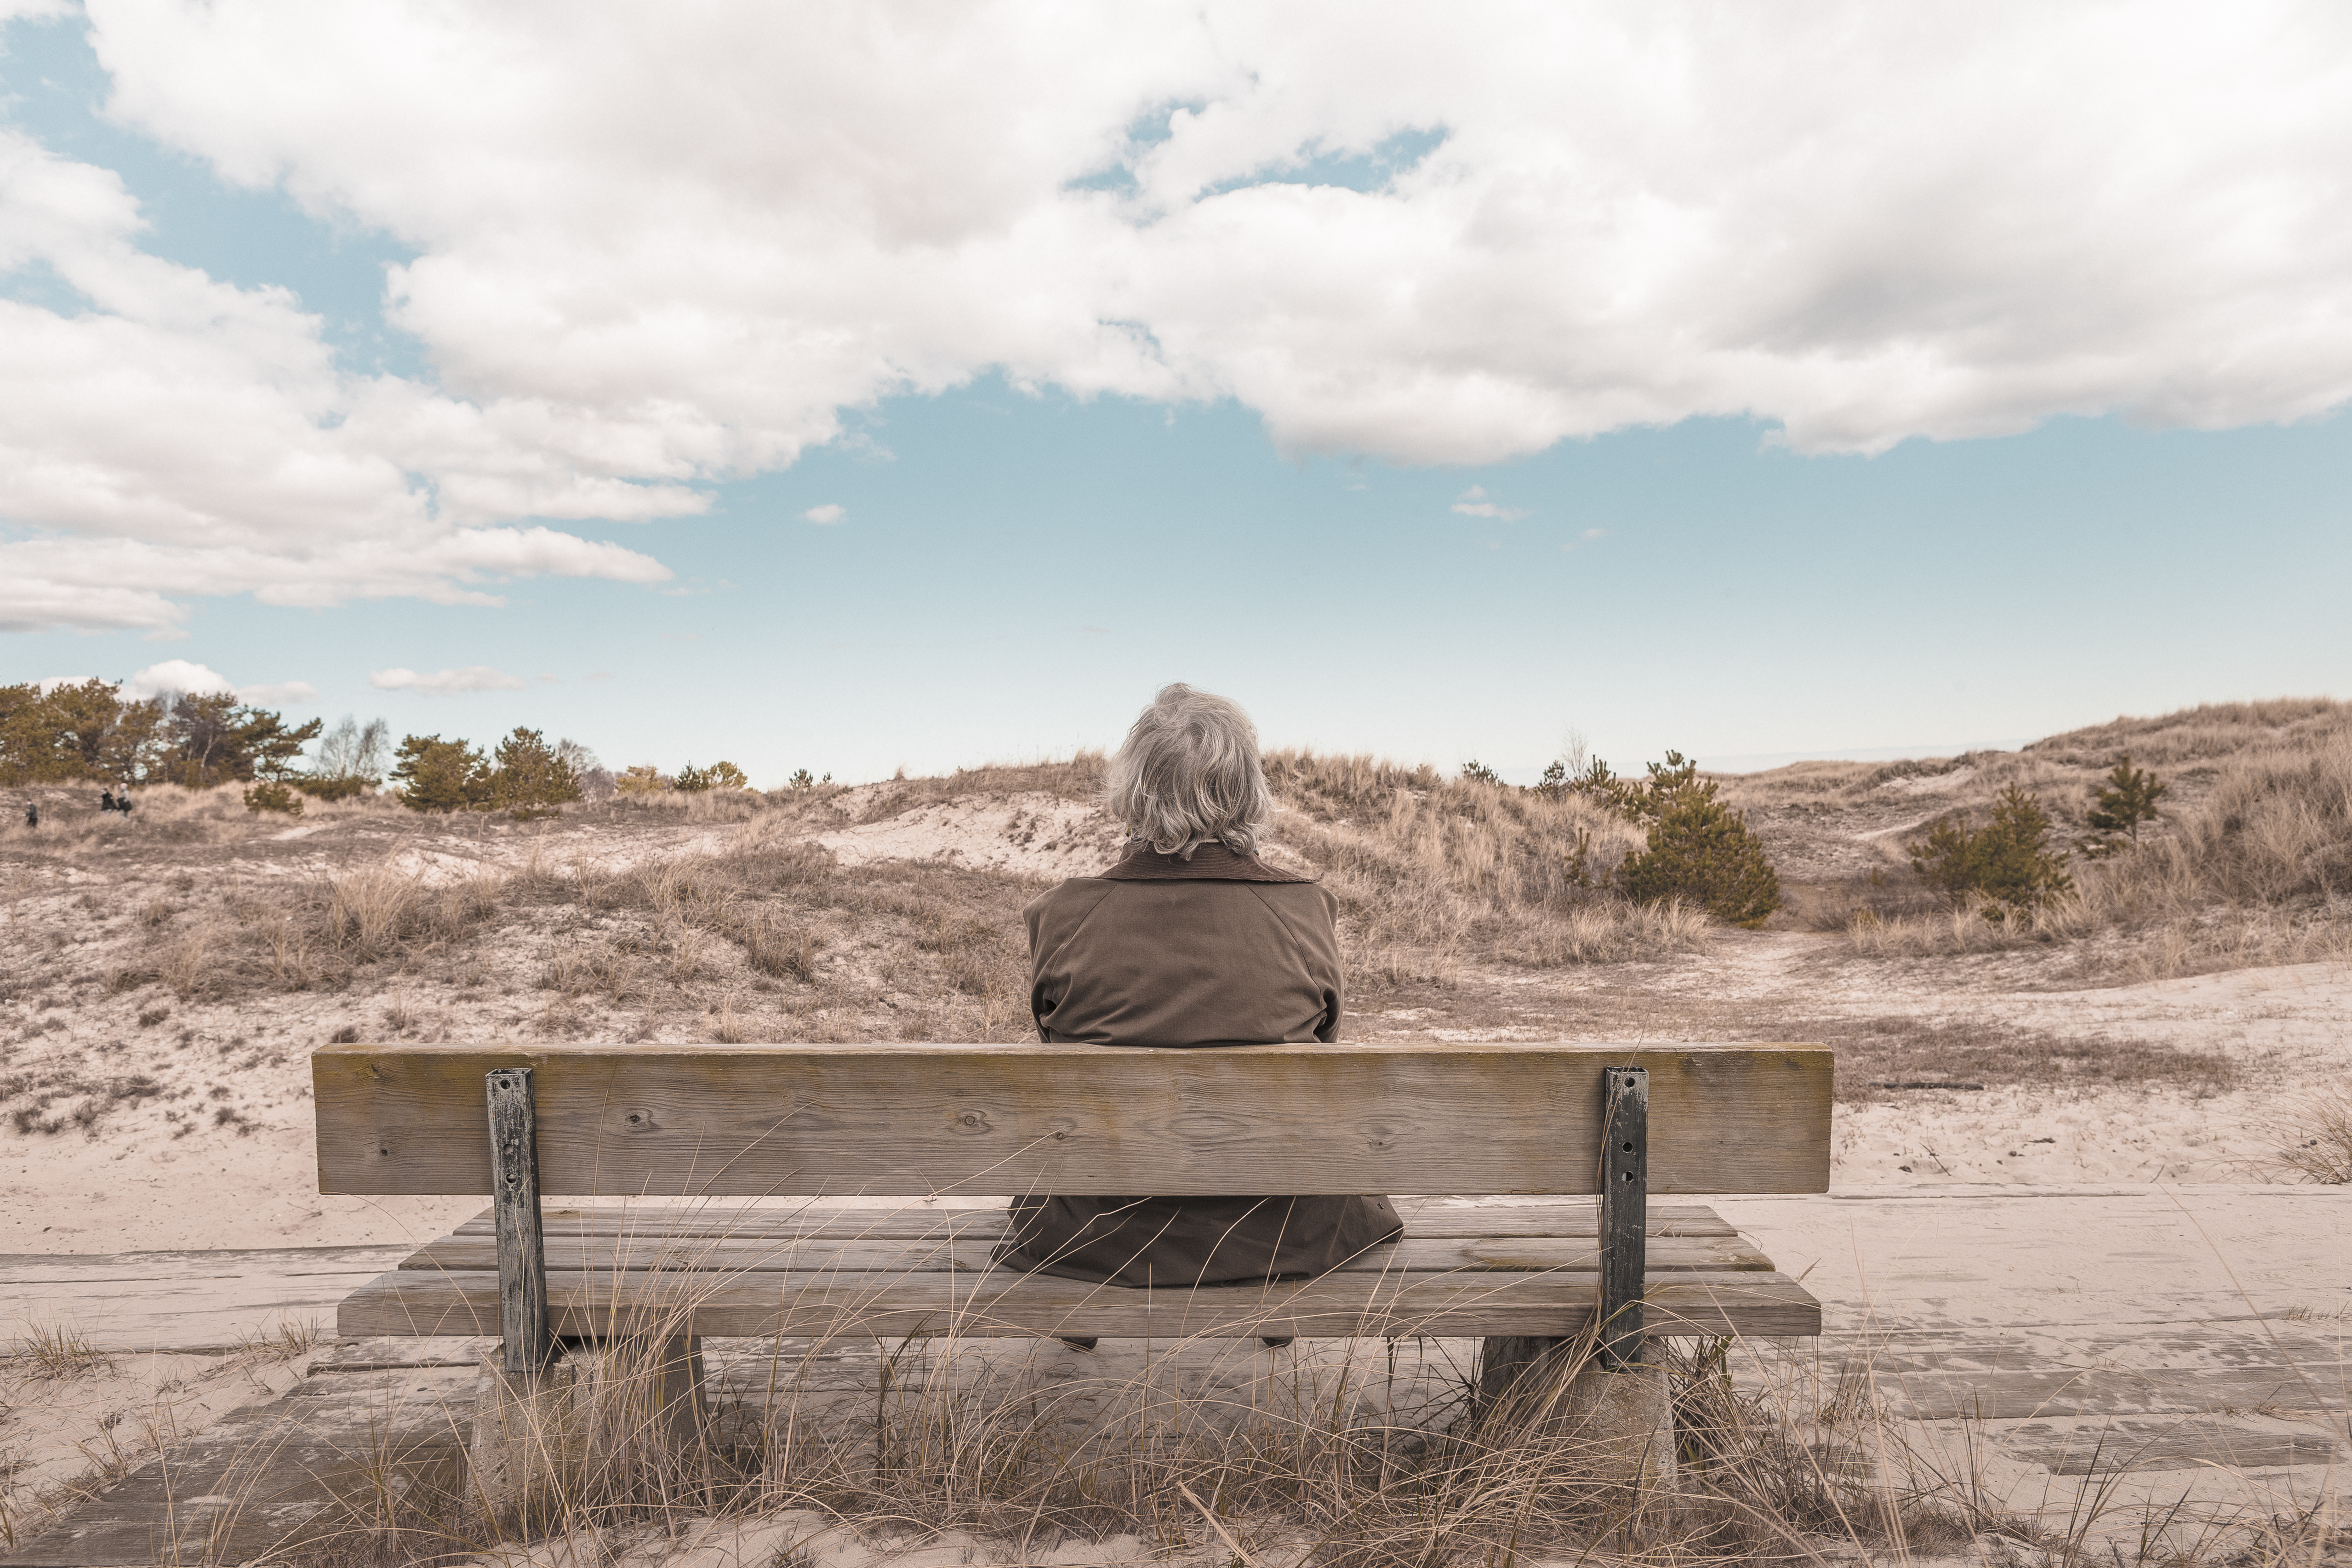 Grey haired woman sitting on bench looking at a sandy hill